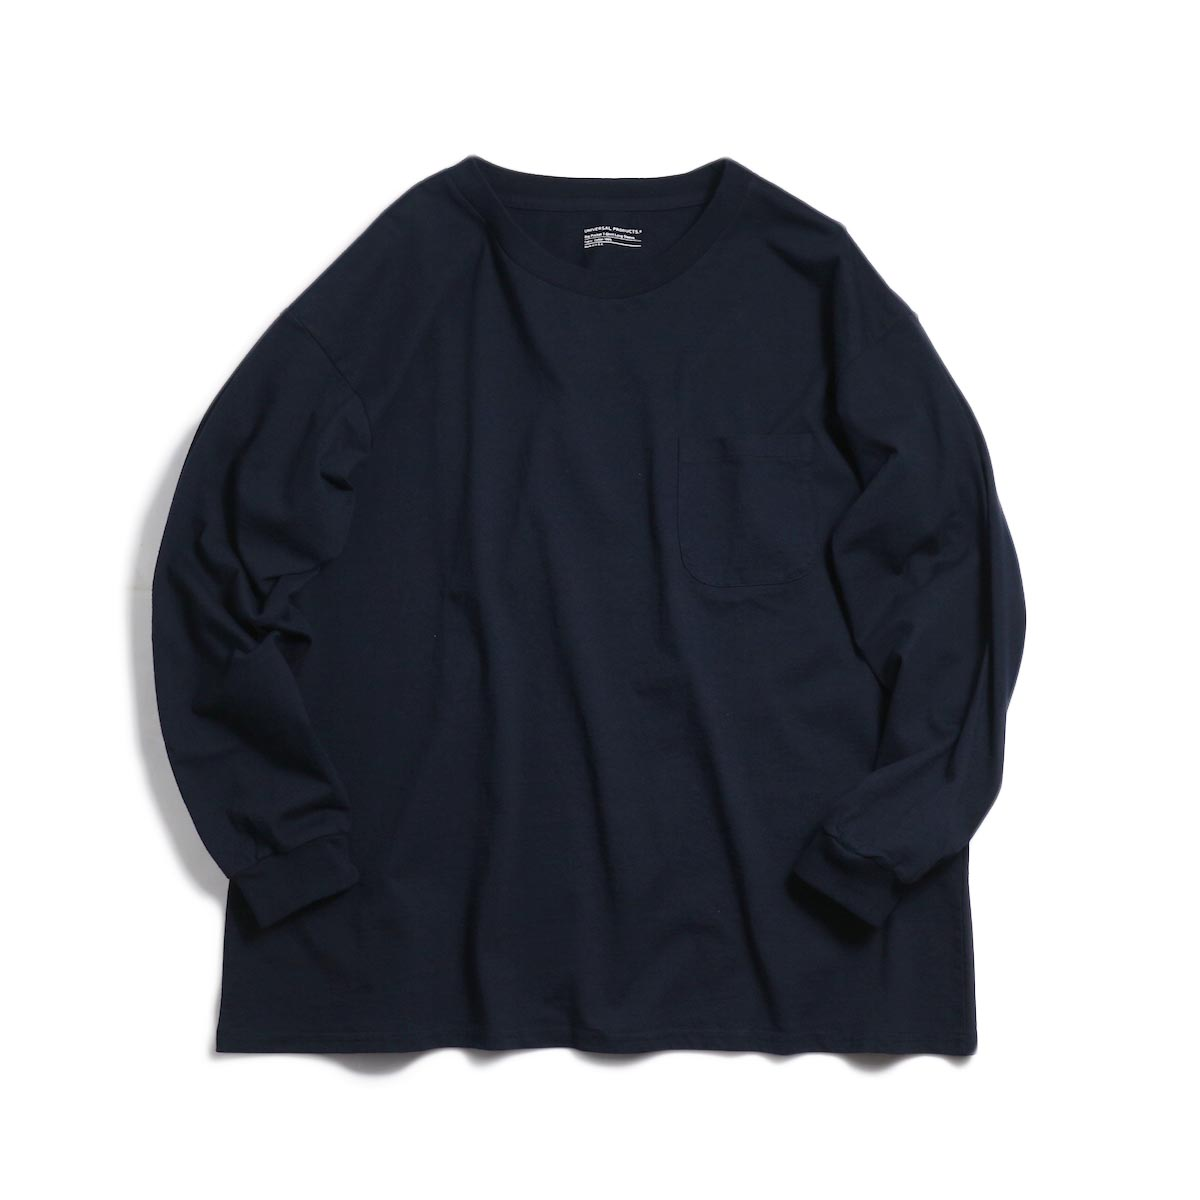 UNIVERSAL PRODUCTS / Heavy Weight L/S T-Shirt -Navy